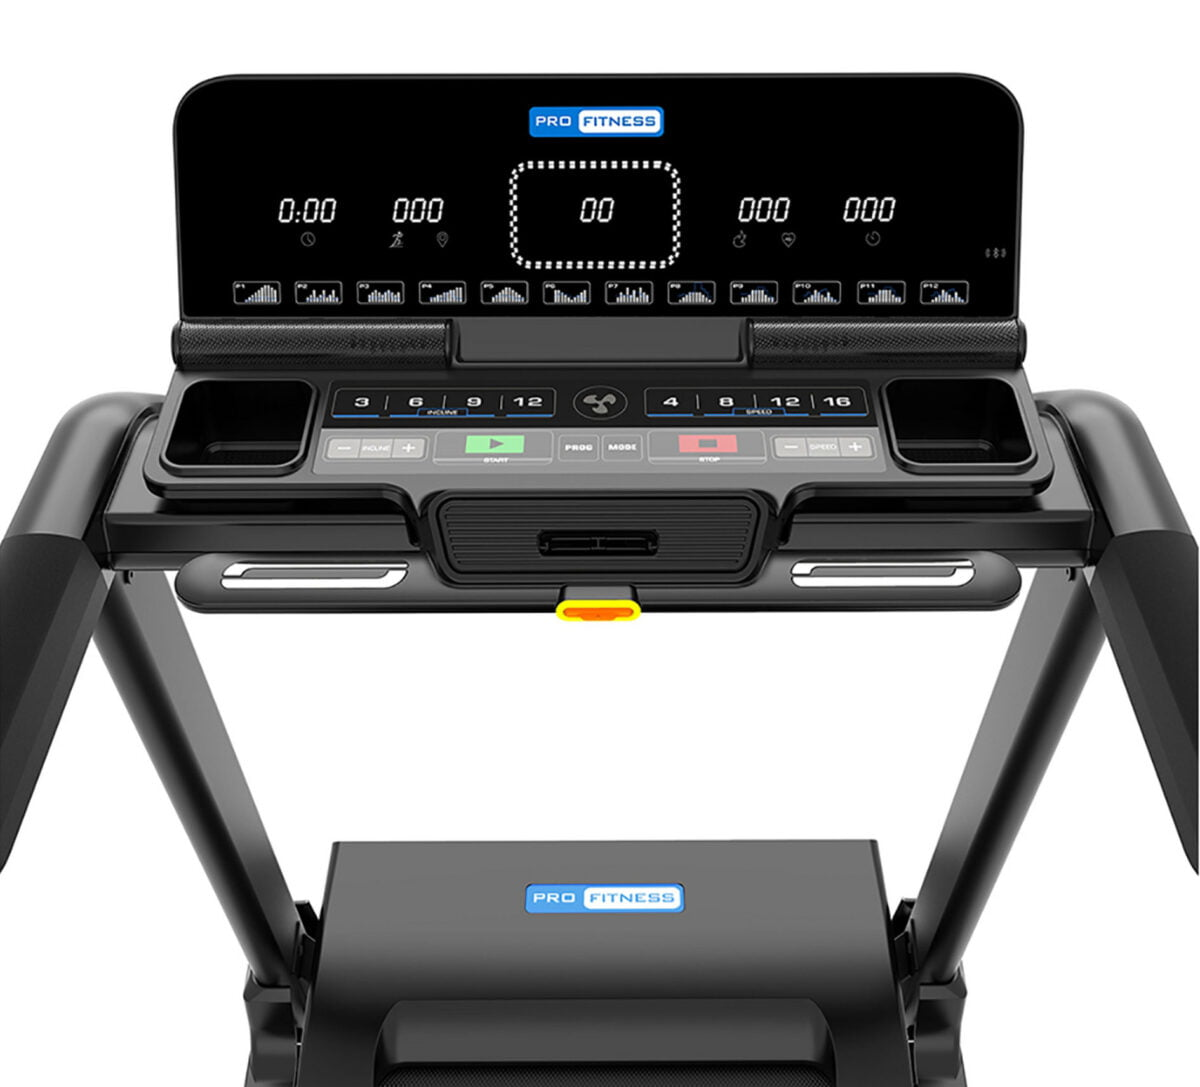 Pro Fitness T3000 Folding Treadmill LCD screen and buttons